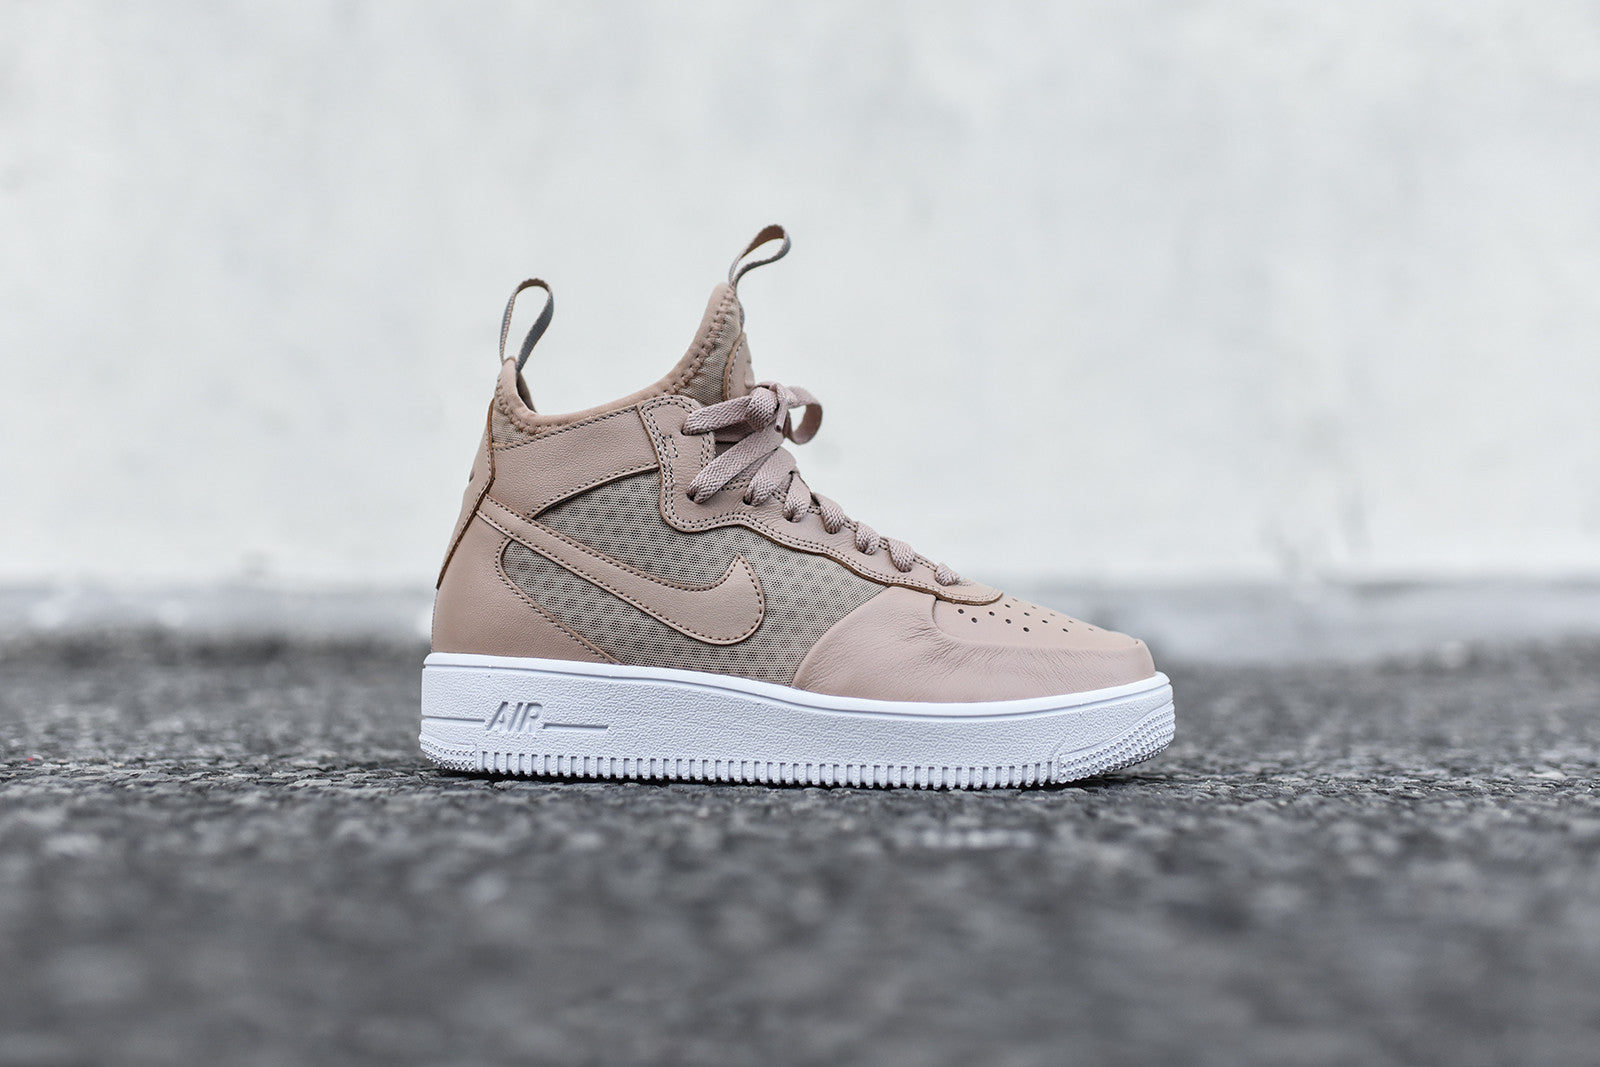 d5a5210bc4f Nike WMNS Air Force 1 Ultraforce Mid - Vachetta Tan. February 07